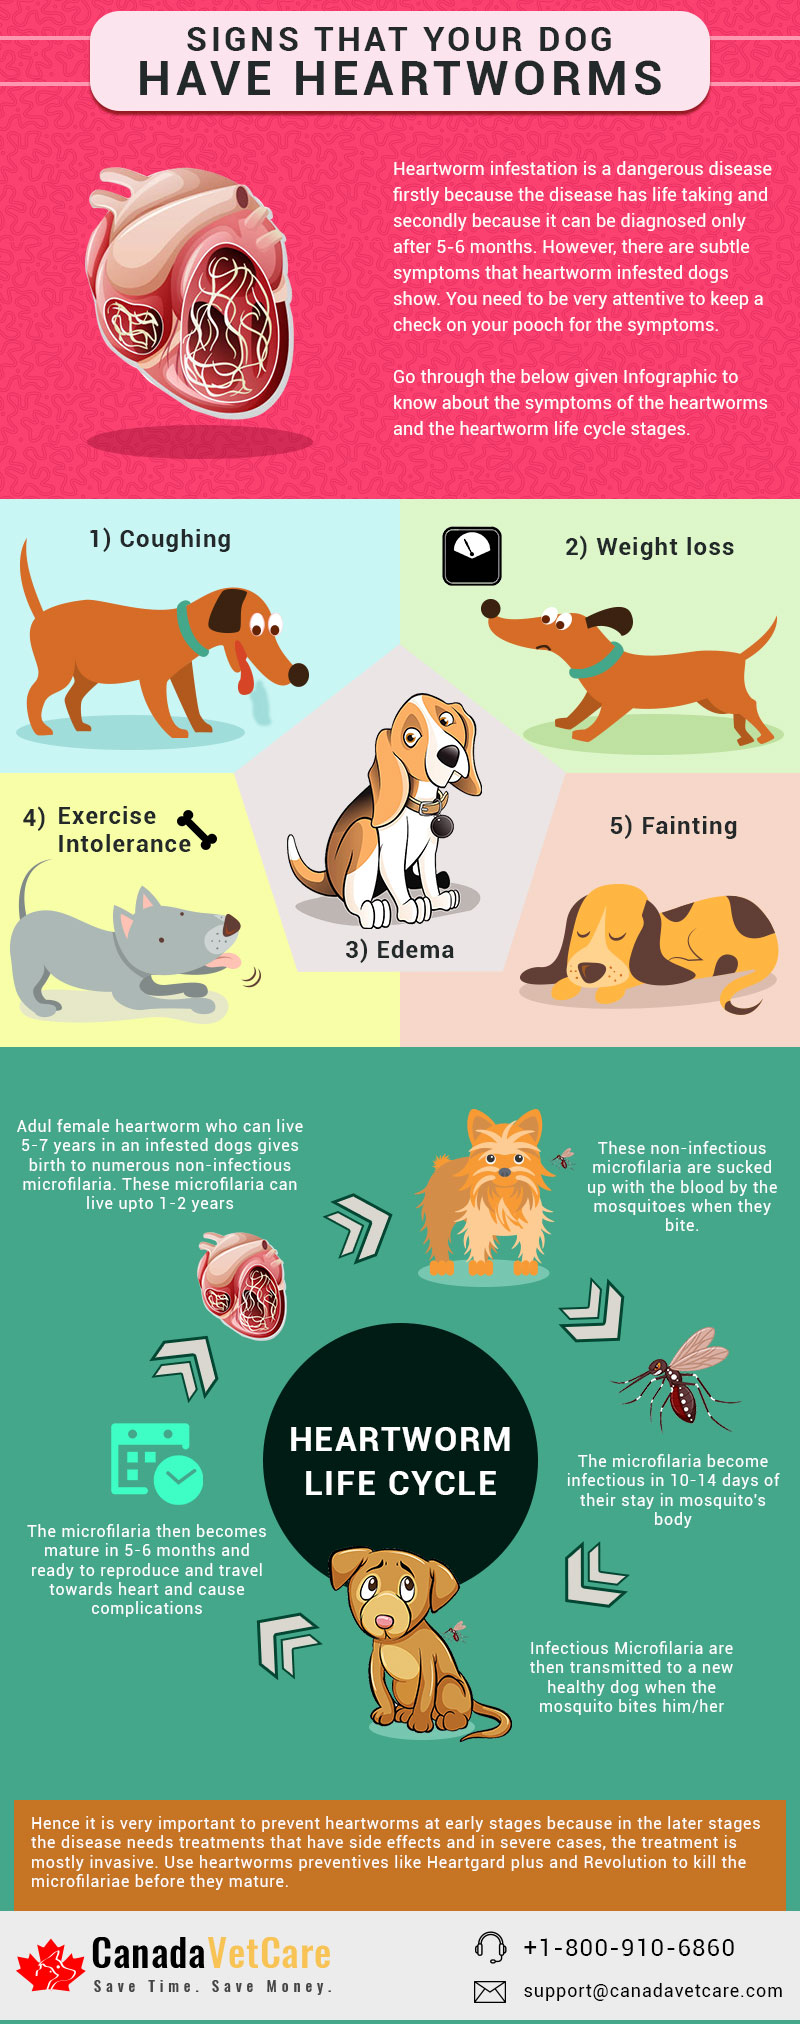 5 Signs That Indicate Your Dog Has Heartworms - Infographic